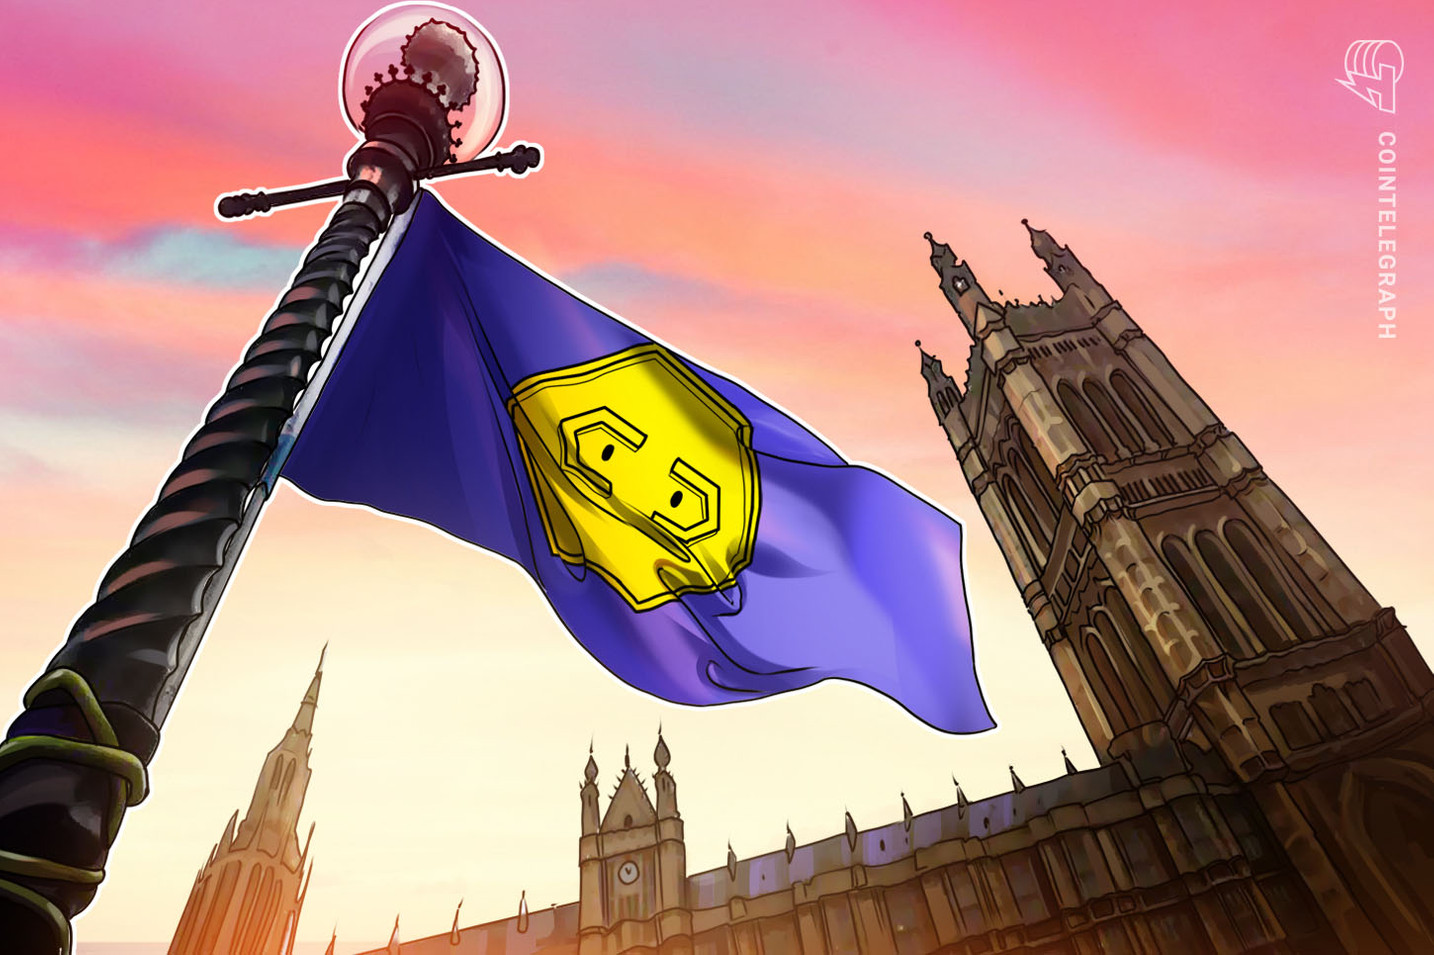 Crypto Has Left Cypherpunk Roots to Mimic Traditional Finance, Says UK Regulator